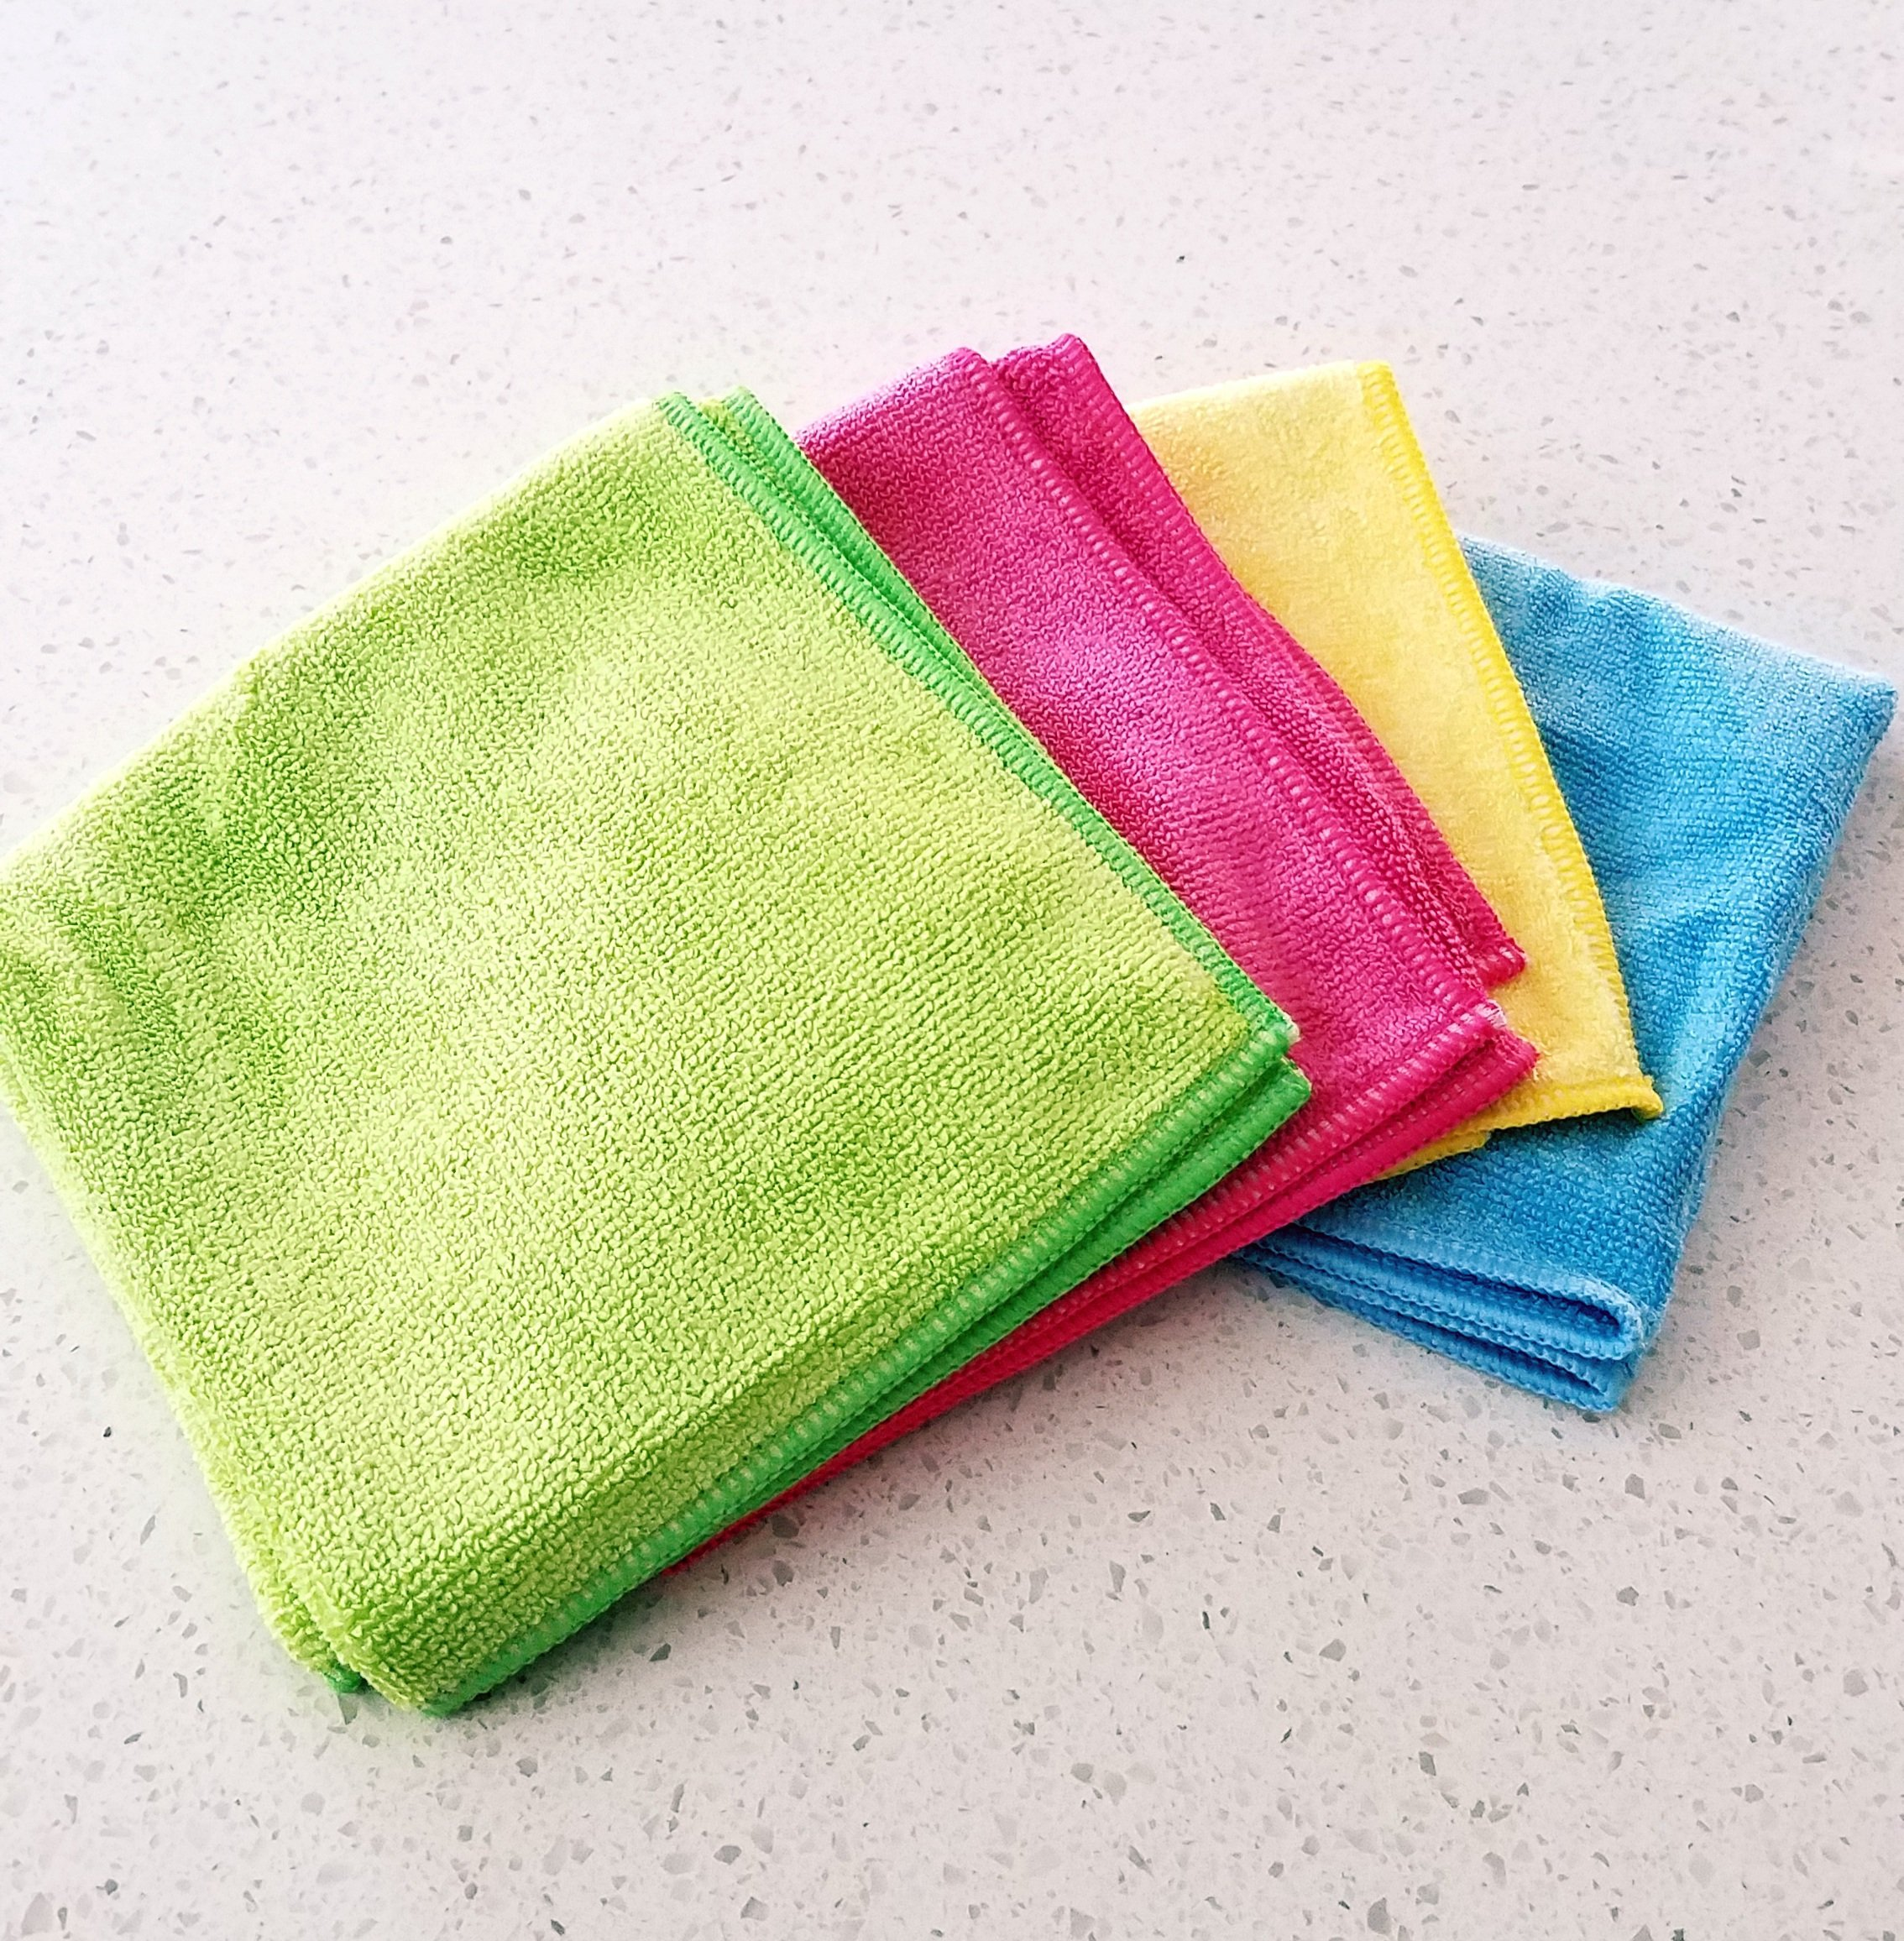 14 Tips How to Wash and Maintain Microfiber Cloths, Towels, and Pads